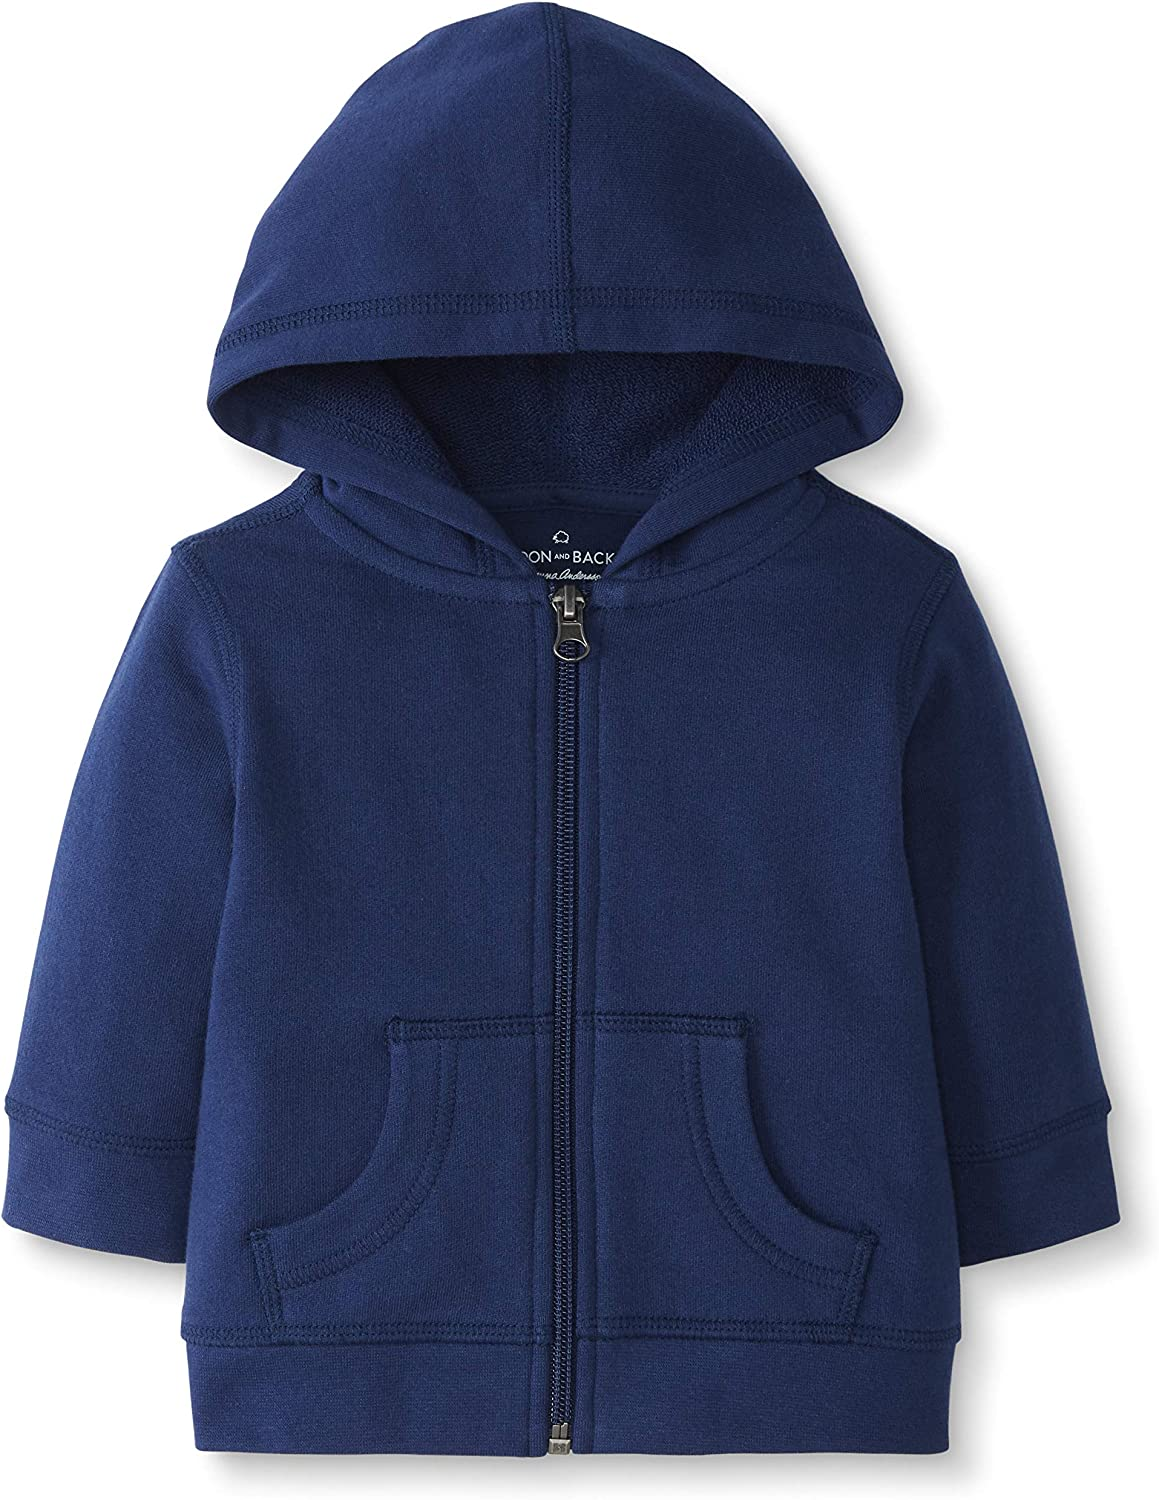 Moon and Back by Hanna Andersson Girls' Hooded Sweatshirt